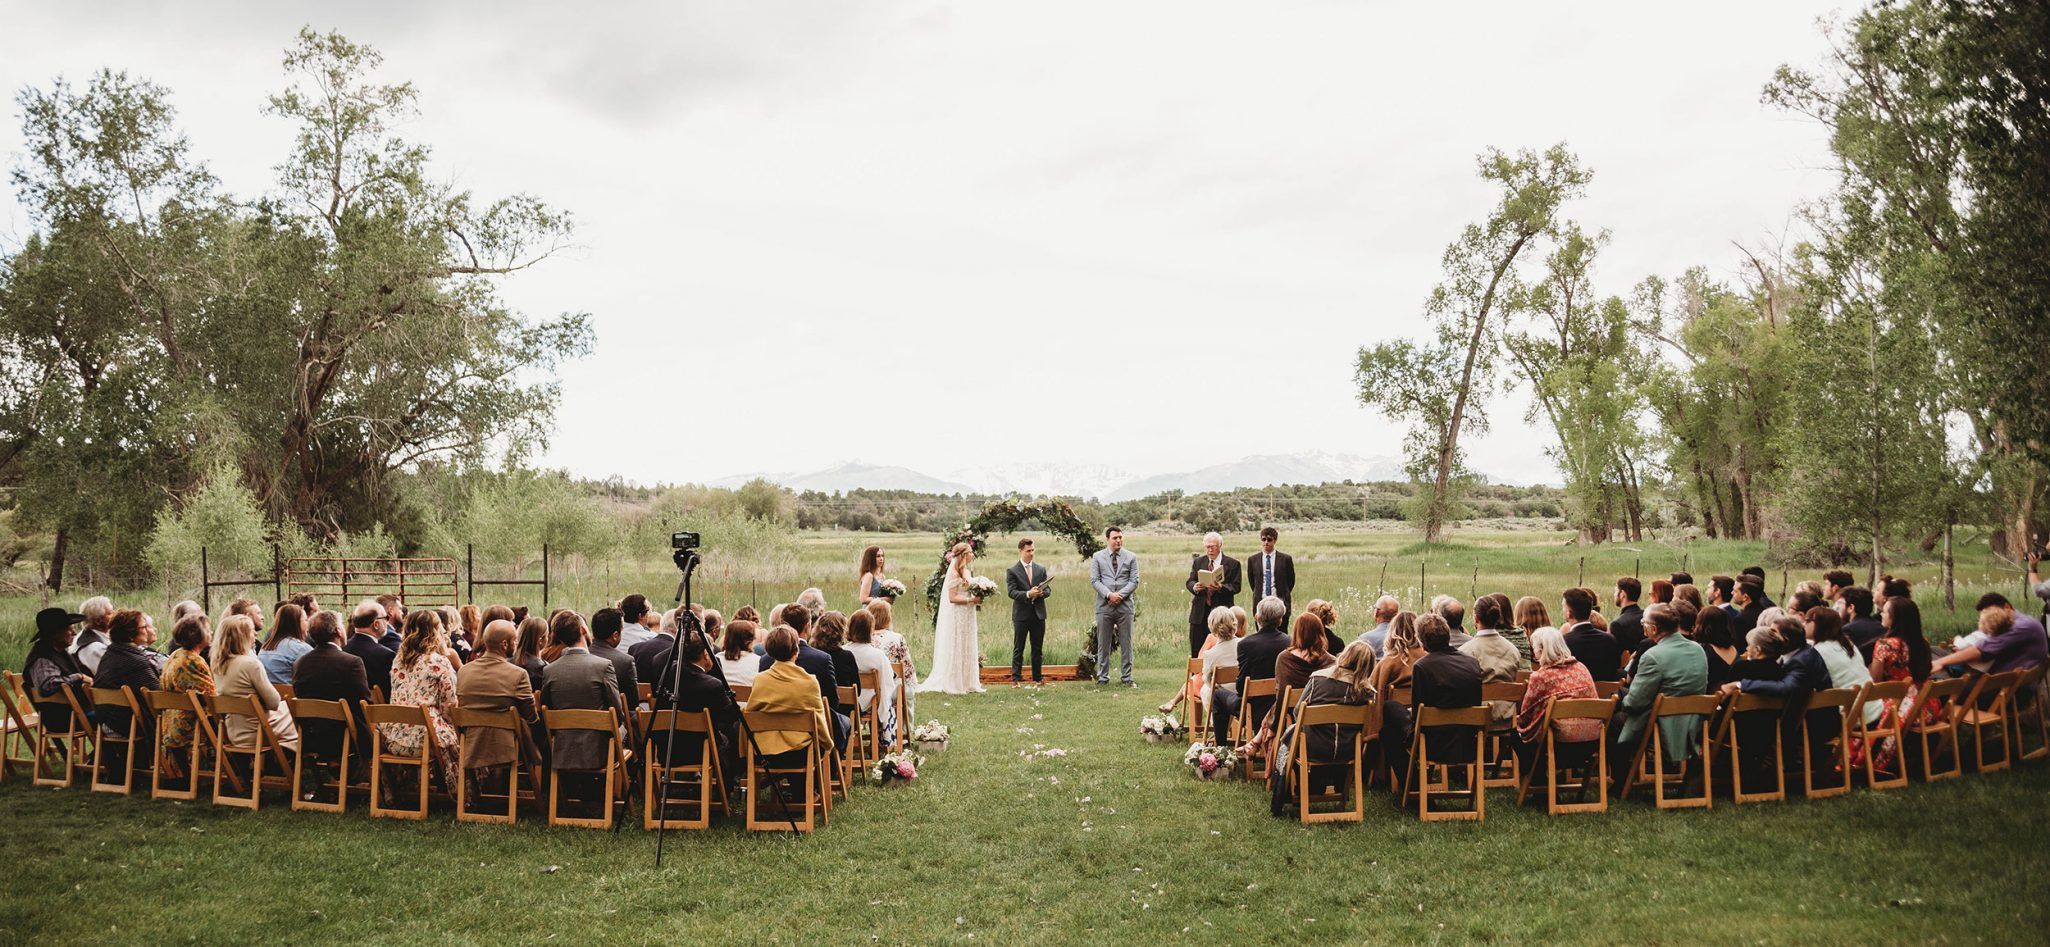 Outdoor ceremony at Ridgewood Event Center, Durango CO